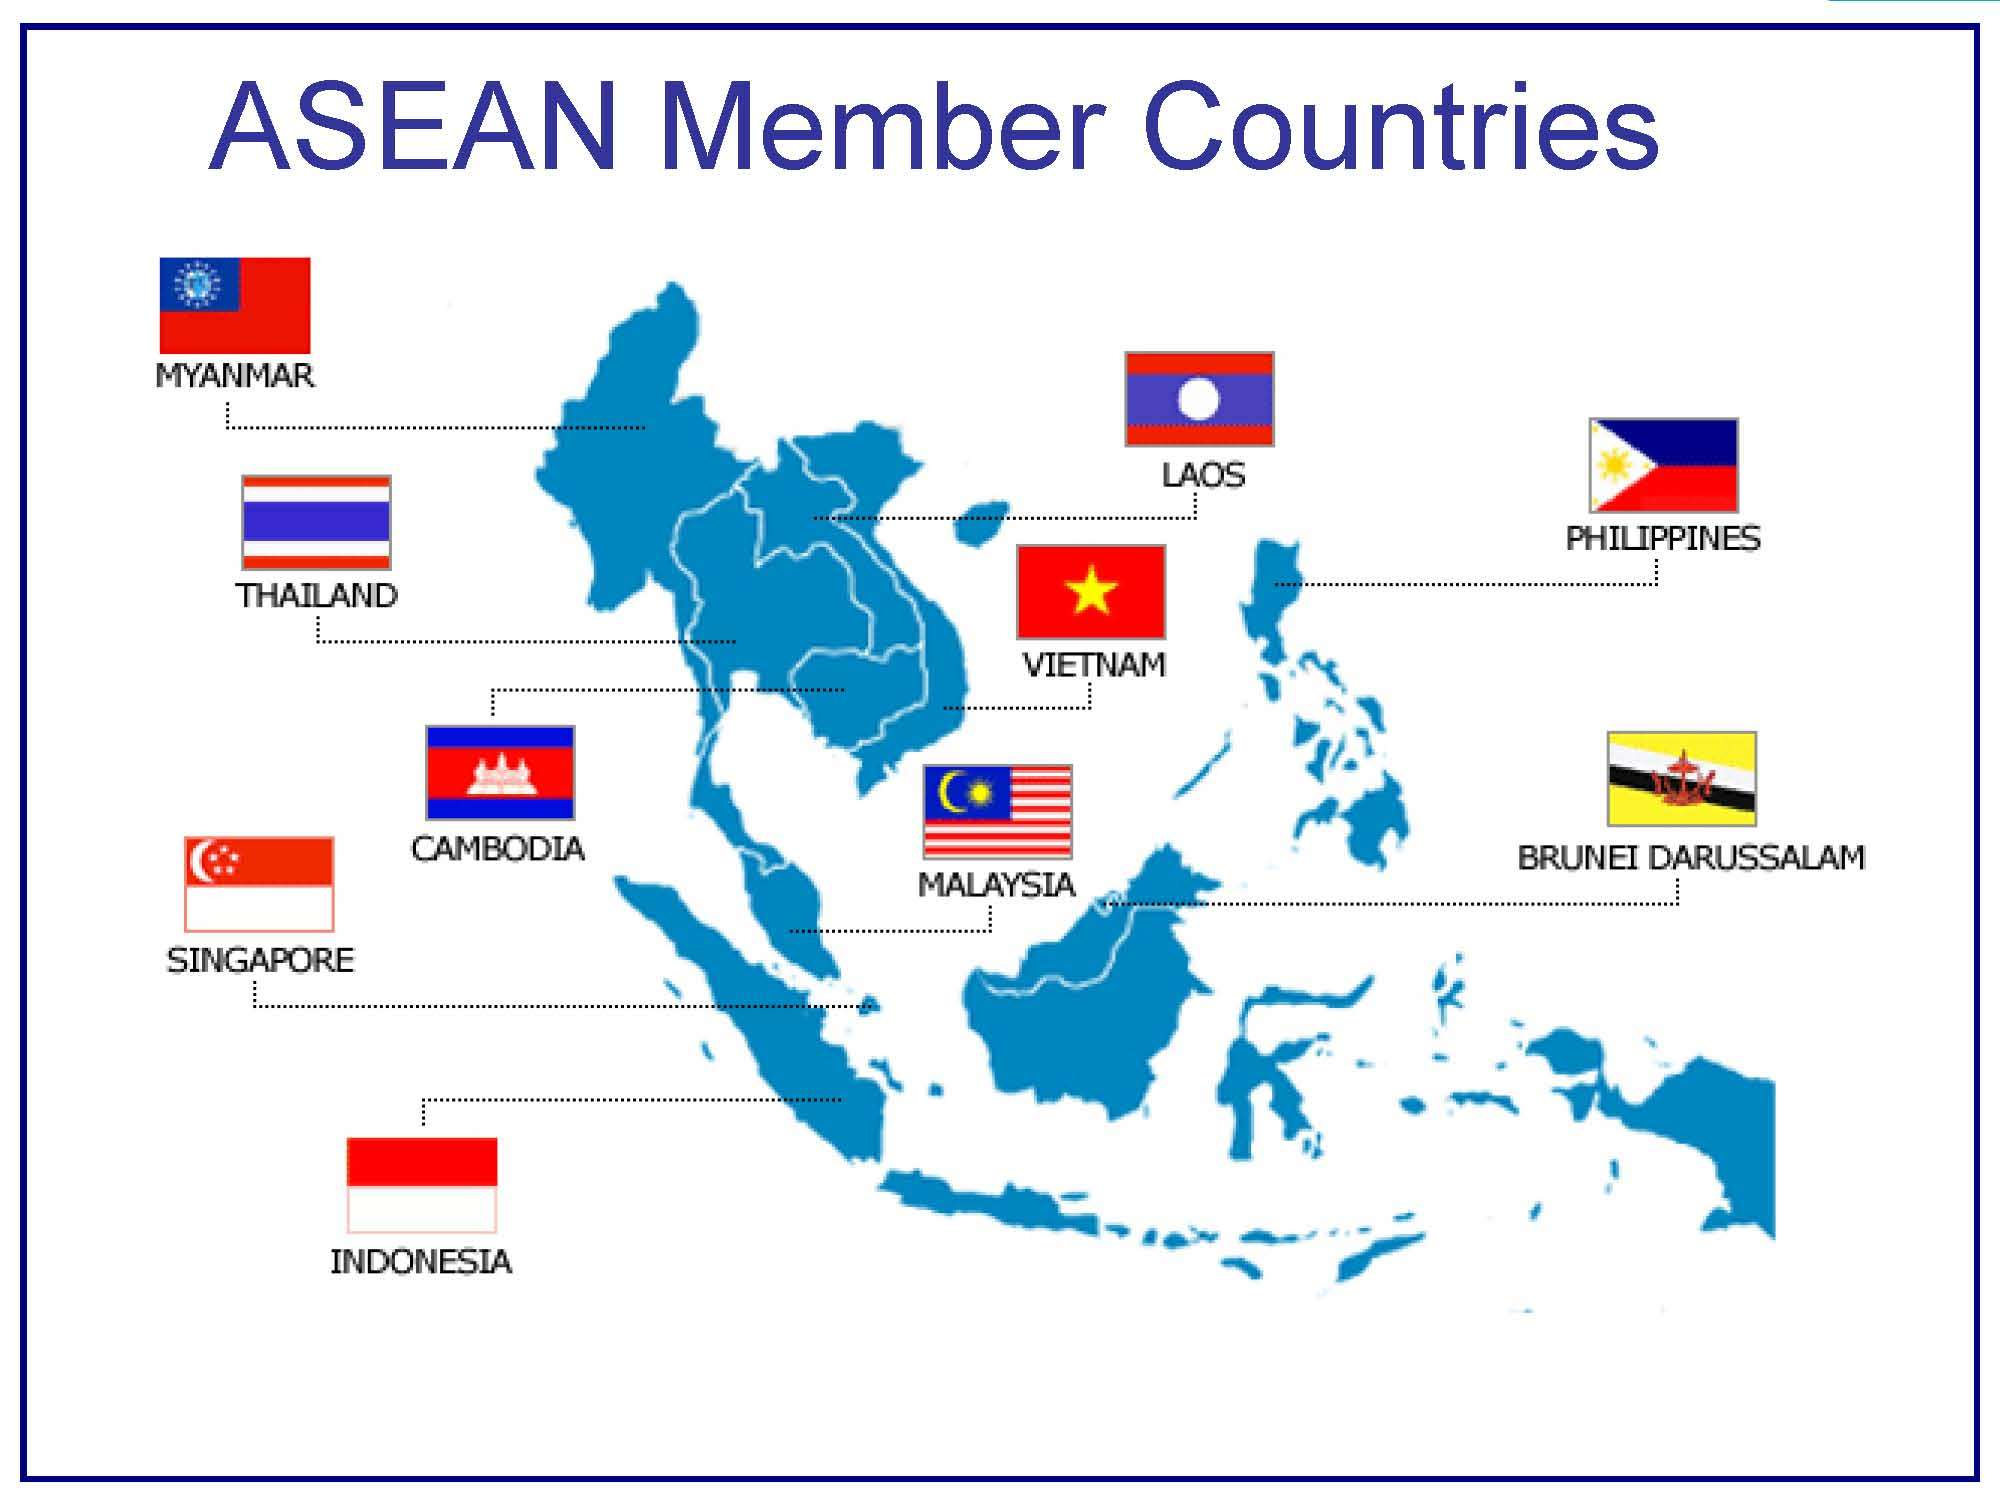 Negara-negara anggota ASEAN (http://up.edu.ph)